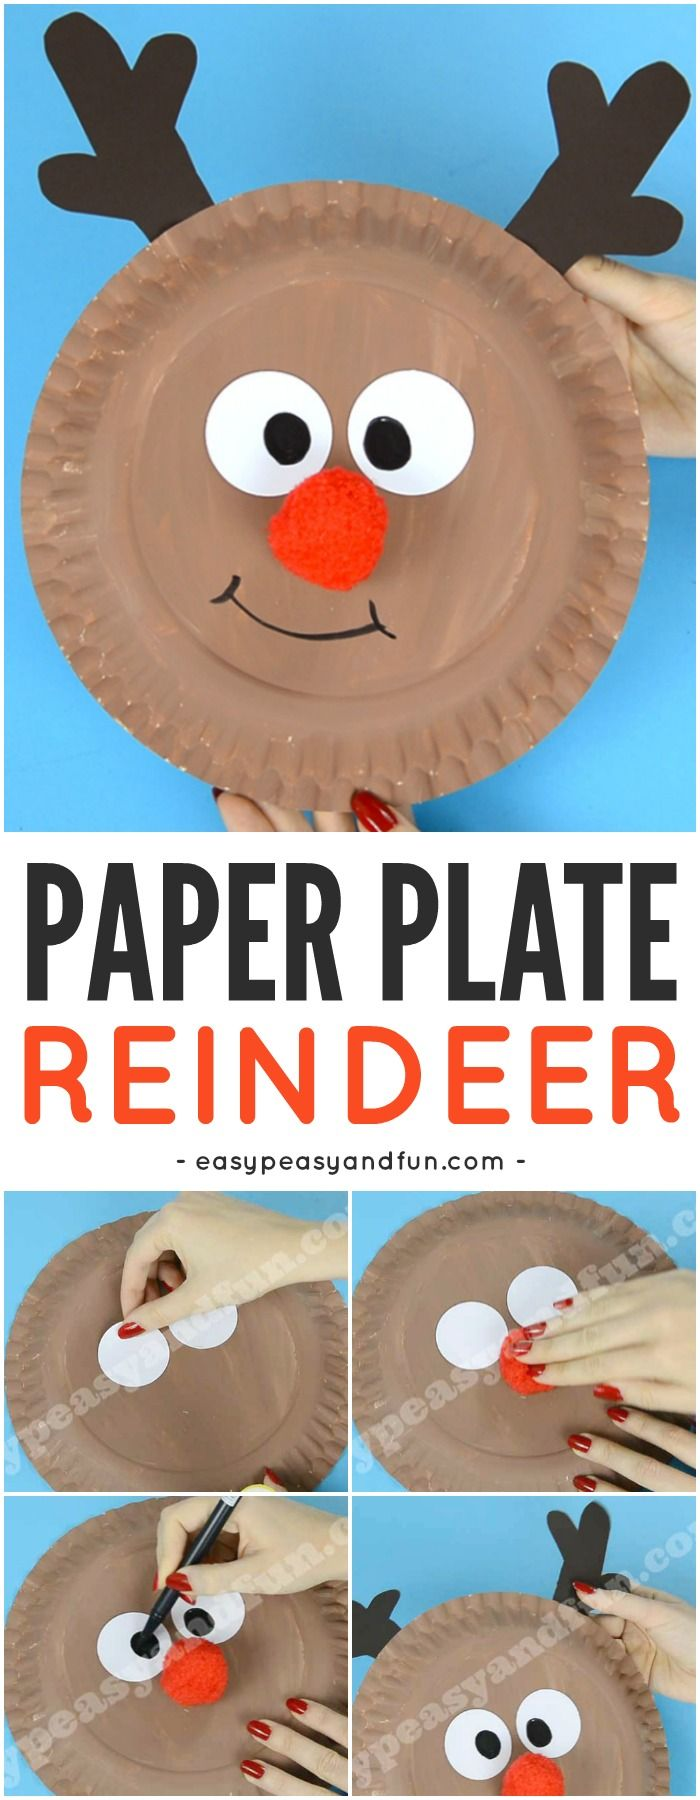 Reindeer Paper Plate Craft with a Cute Red Nose | Plate crafts Fun christmas activities and Paper plate crafts  sc 1 st  Pinterest & Reindeer Paper Plate Craft with a Cute Red Nose | Plate crafts Fun ...